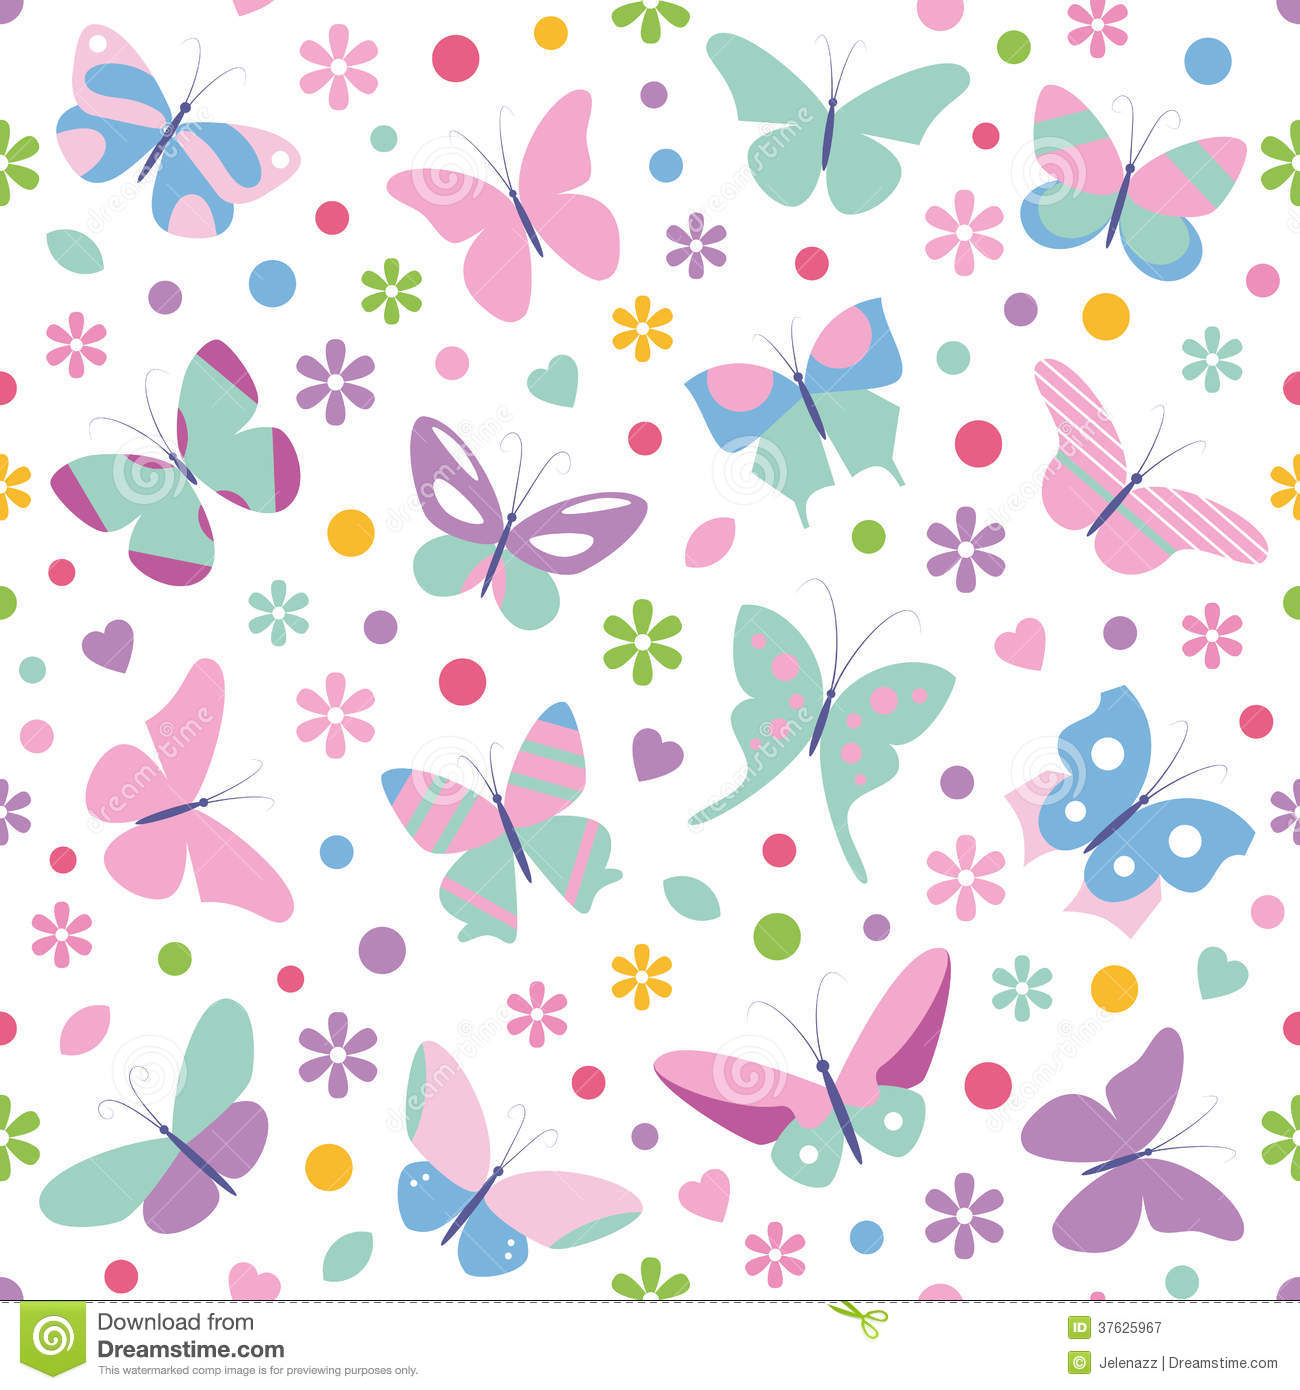 ... Free Stock Photography: Butterflies flowers hearts and dots pattern